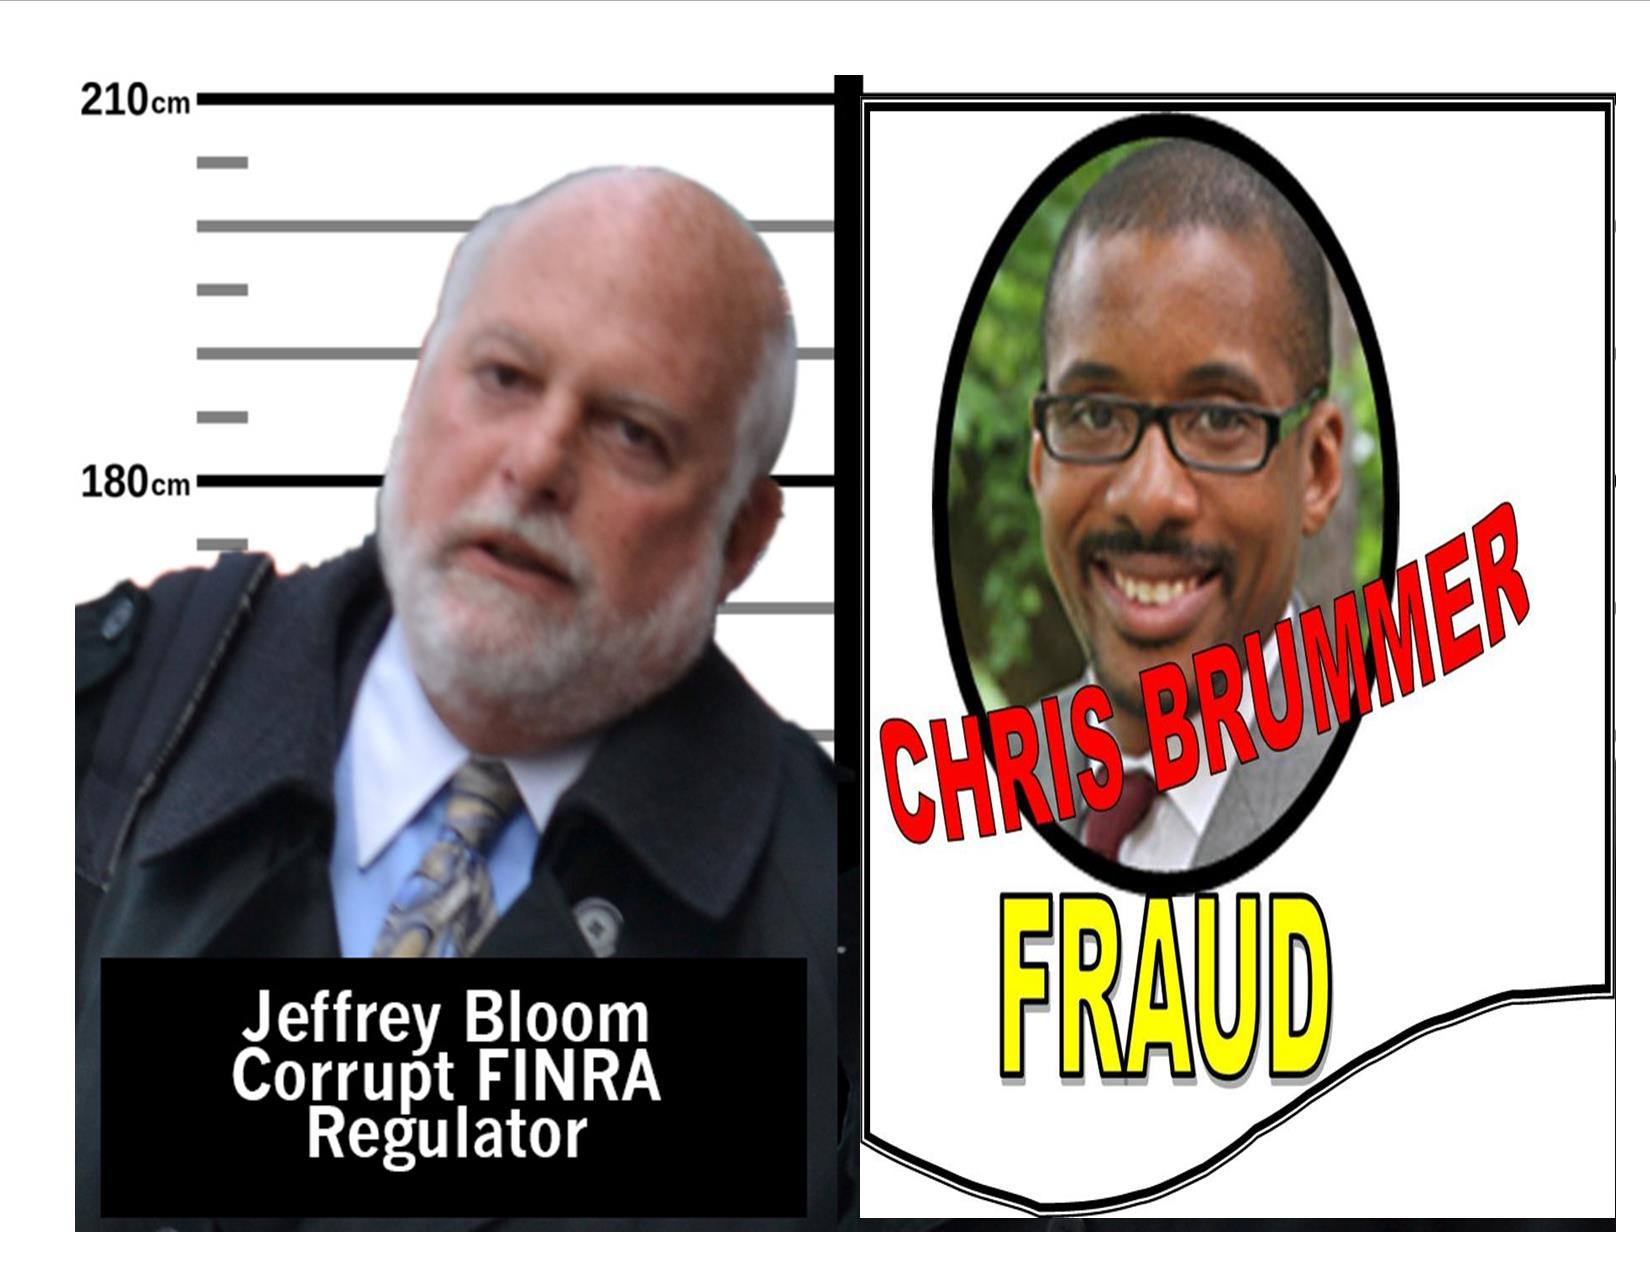 FINRA-STAFFER-JEFFREY-BLOOM-CHRIS-BRUMMER-GEORGETOWN-LAW-SCHOOL-FRAUD